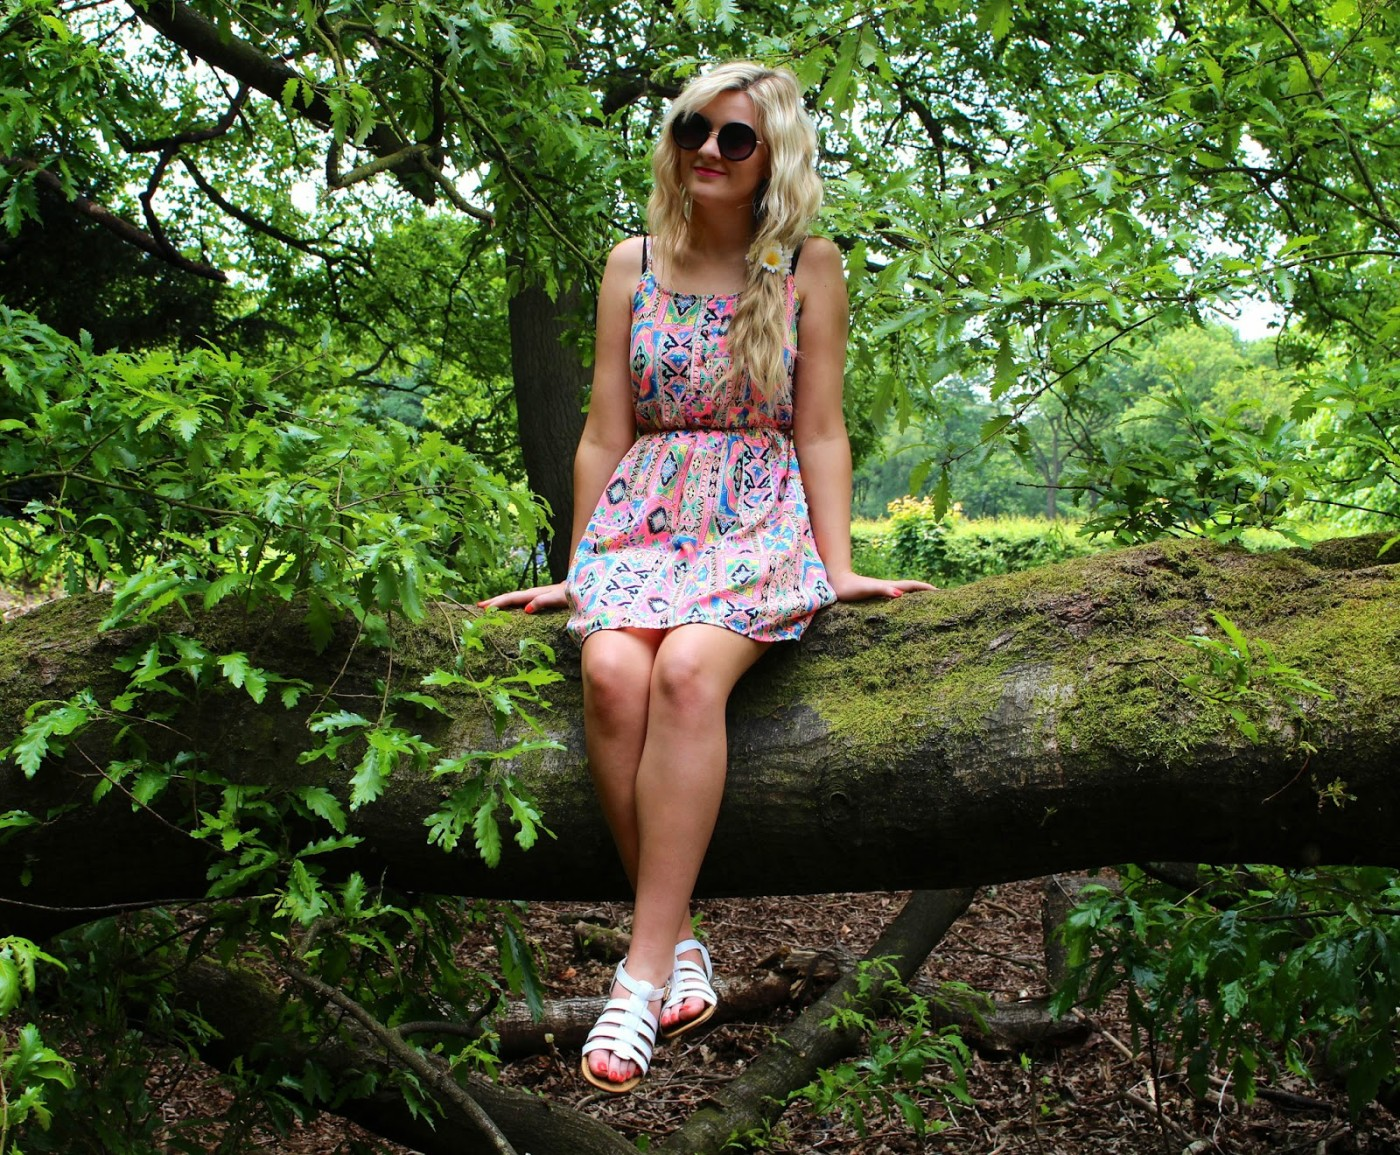 £20 outfit challenge, outfit under £20, primark, fashion, primark ootd, through chelsea's eyes,